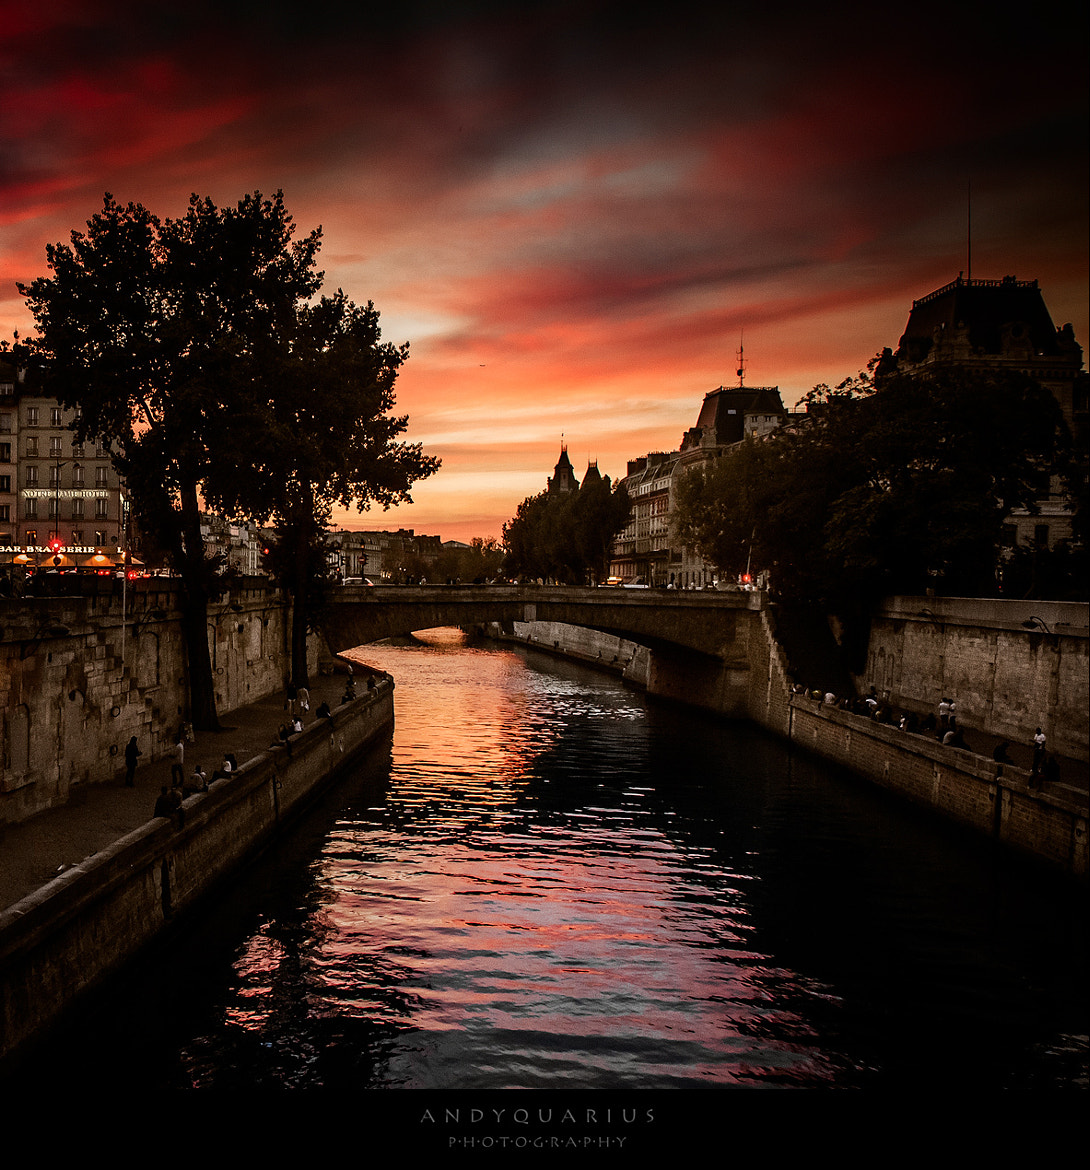 Photograph Paris beautiful sunset by Andy Quarius on 500px